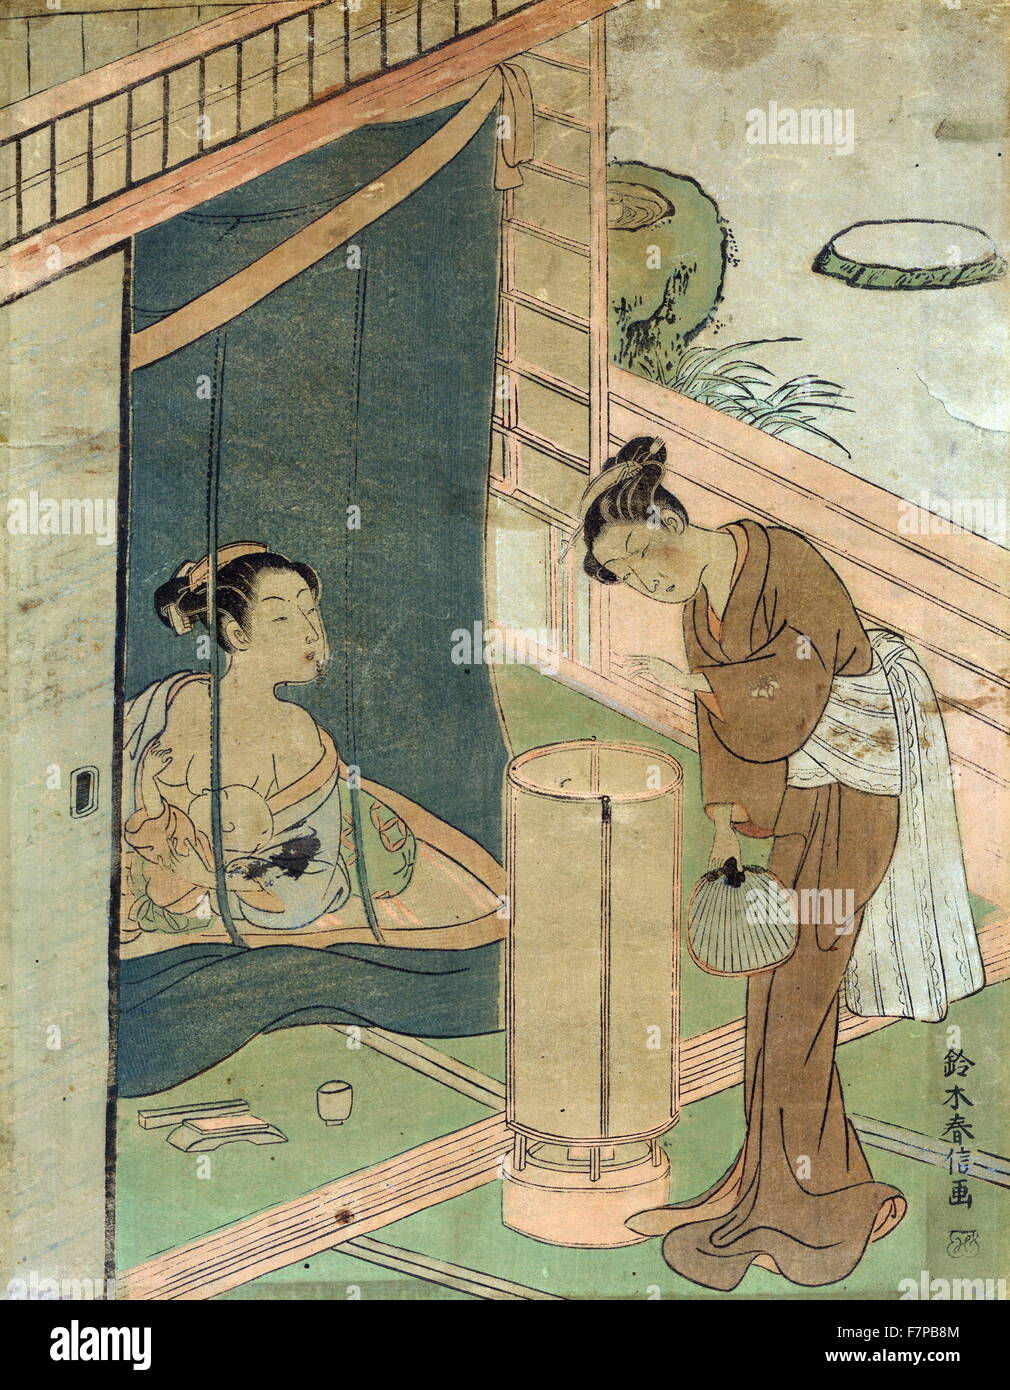 Mother and child behind mosquito netting by Harunobu Suzuki (1724-1770), a Japanese designer of woodblock print - Stock Image